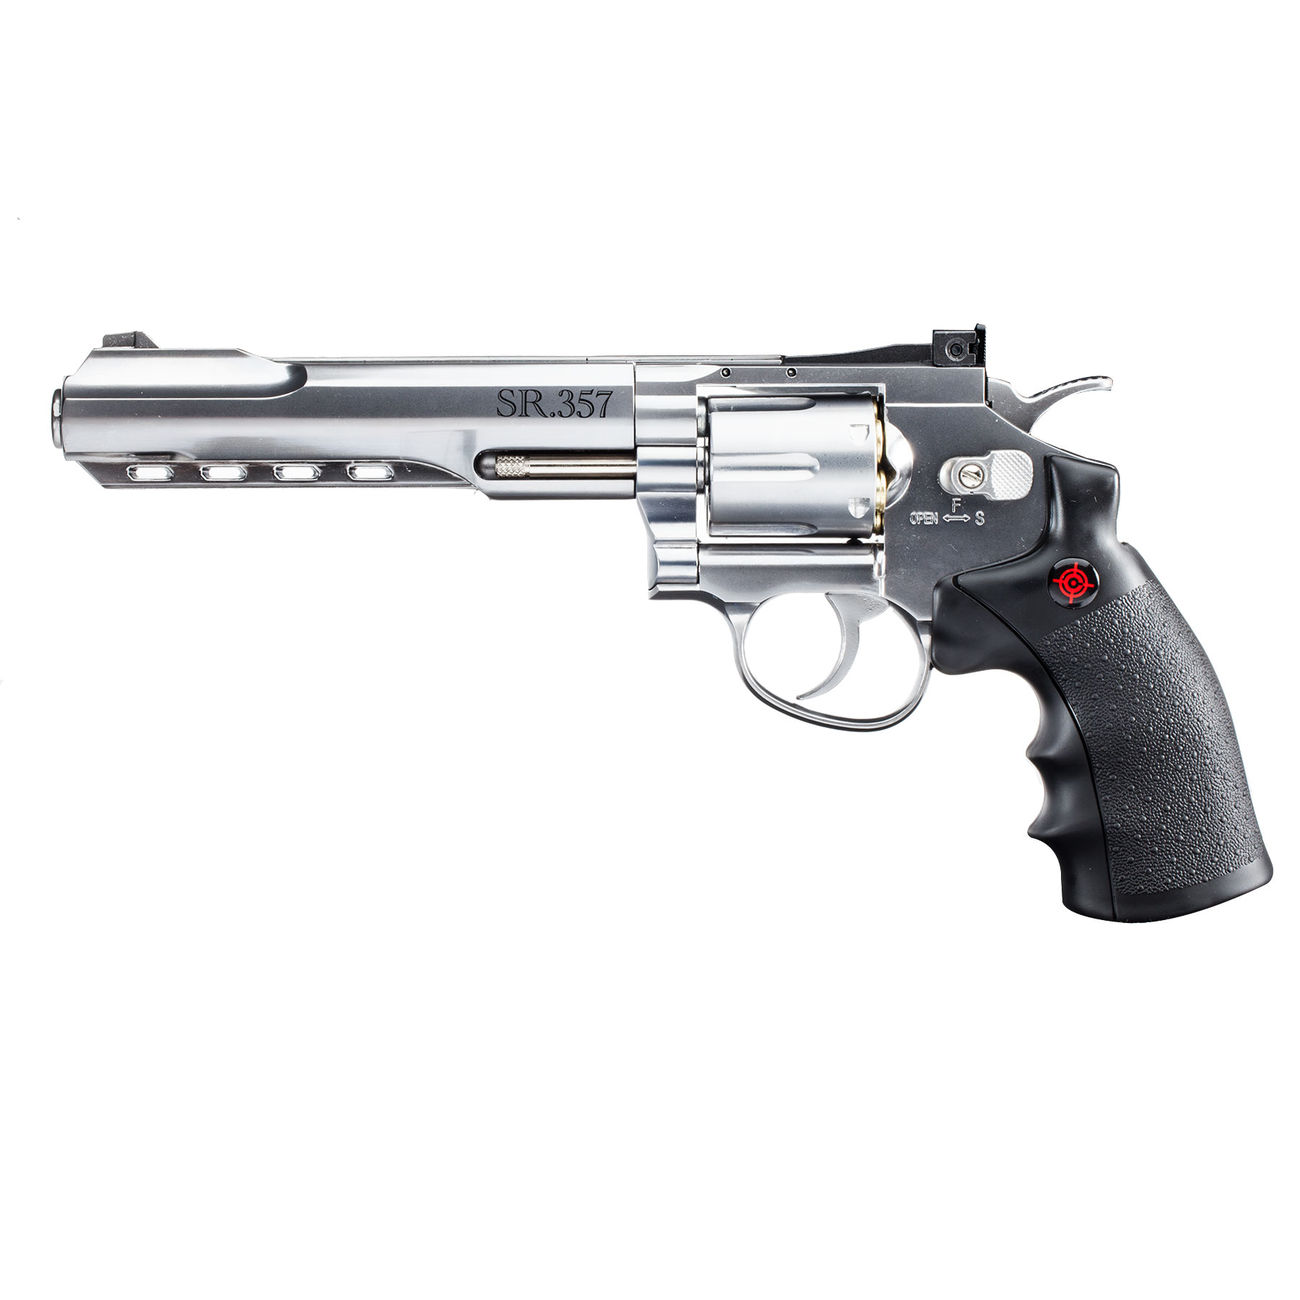 Crosman SR 357 CO2 Revolver 4,5 mm BB silber 0